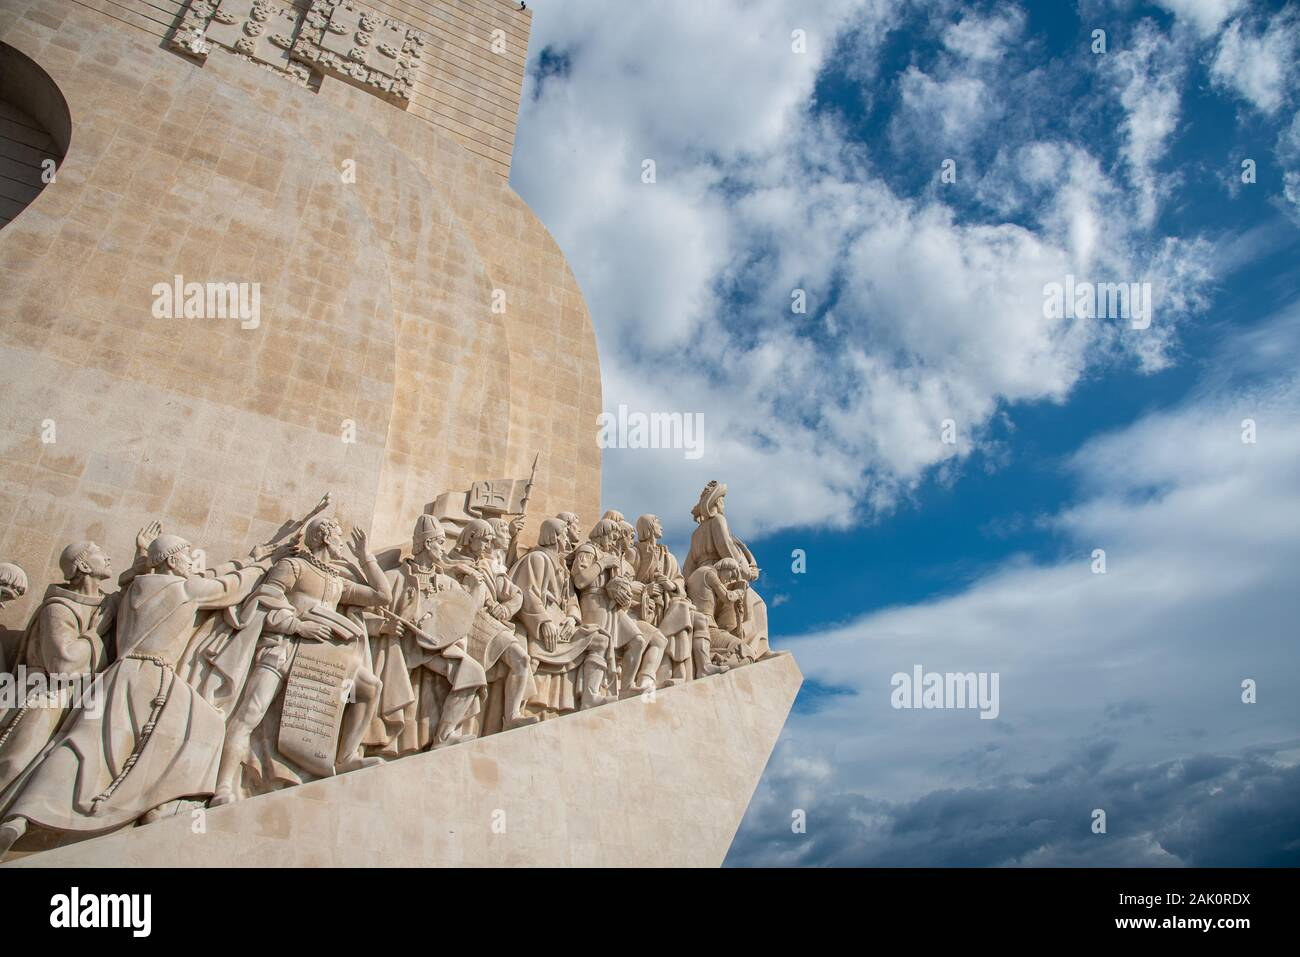 The Padrao dos Descobrimentos or Monument to the Discoveries against blue cloudy sky. Stock Photo